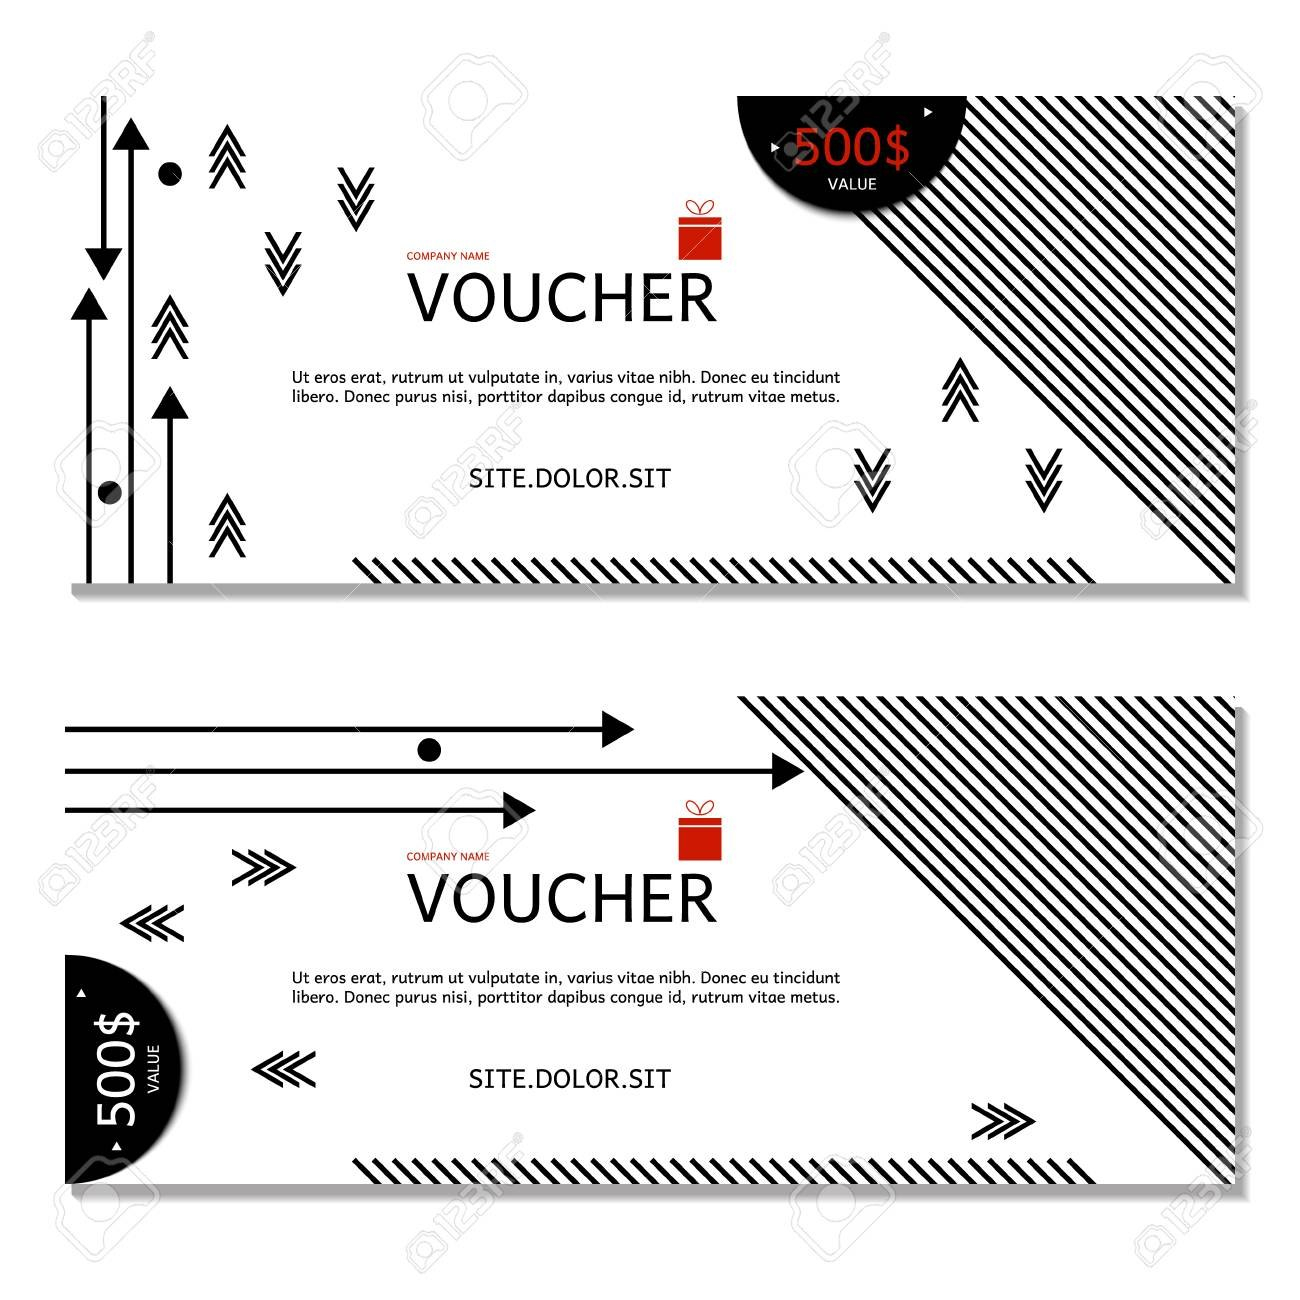 Gift Voucher Vector Illustration Coupon And Voucher Template For Company Gift Certificate Template